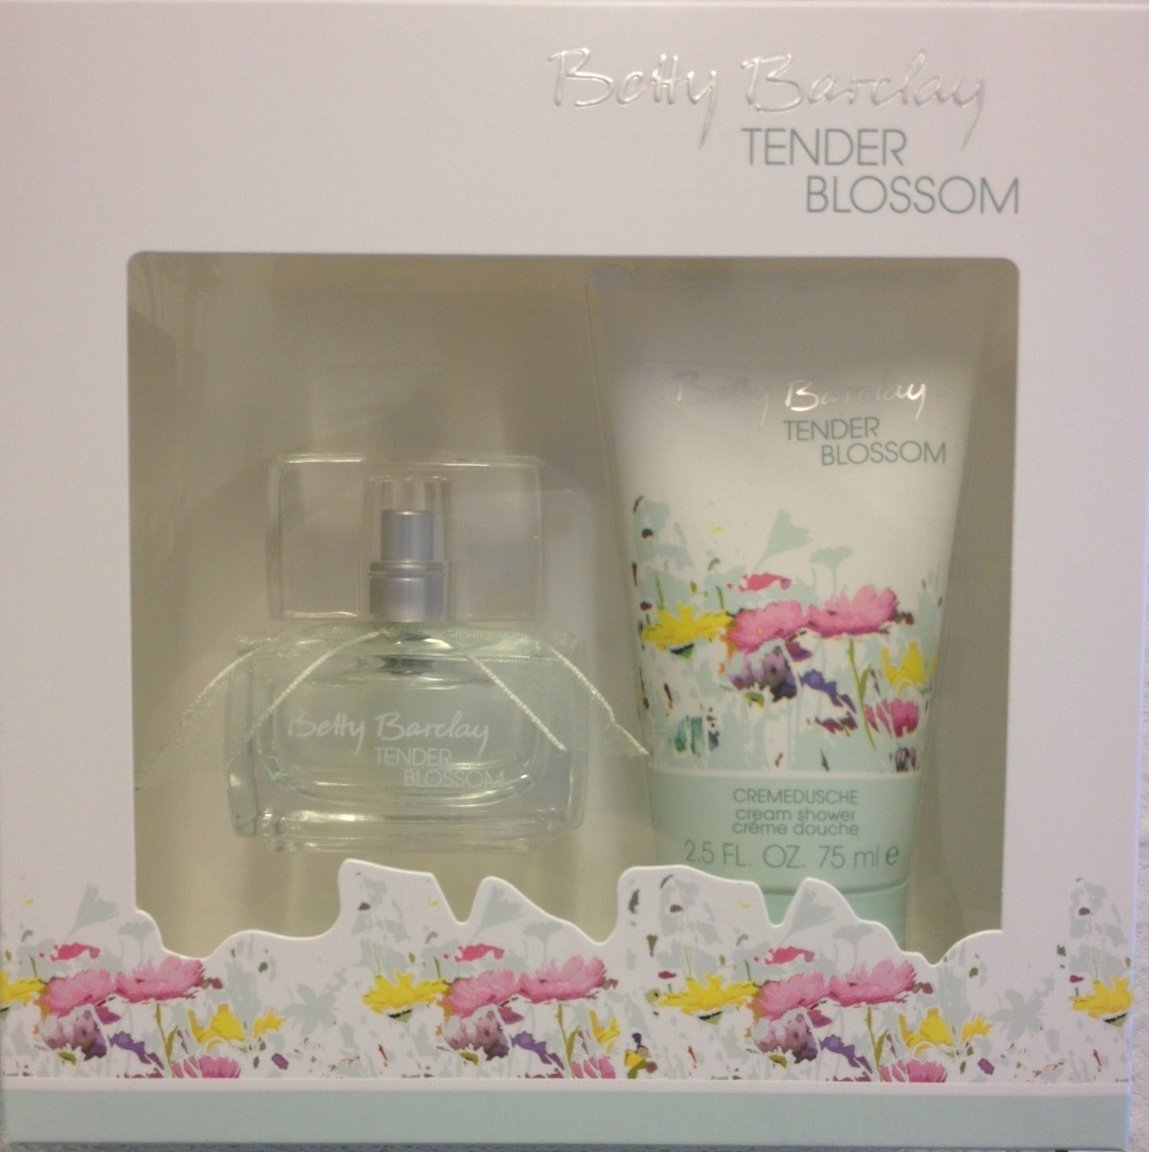 Betty Barclay TENDER BLOSSOM Geschenkset, Inhalt: Eau de Toilette Natural Spray 20 ml + Cremedusche 75 ml